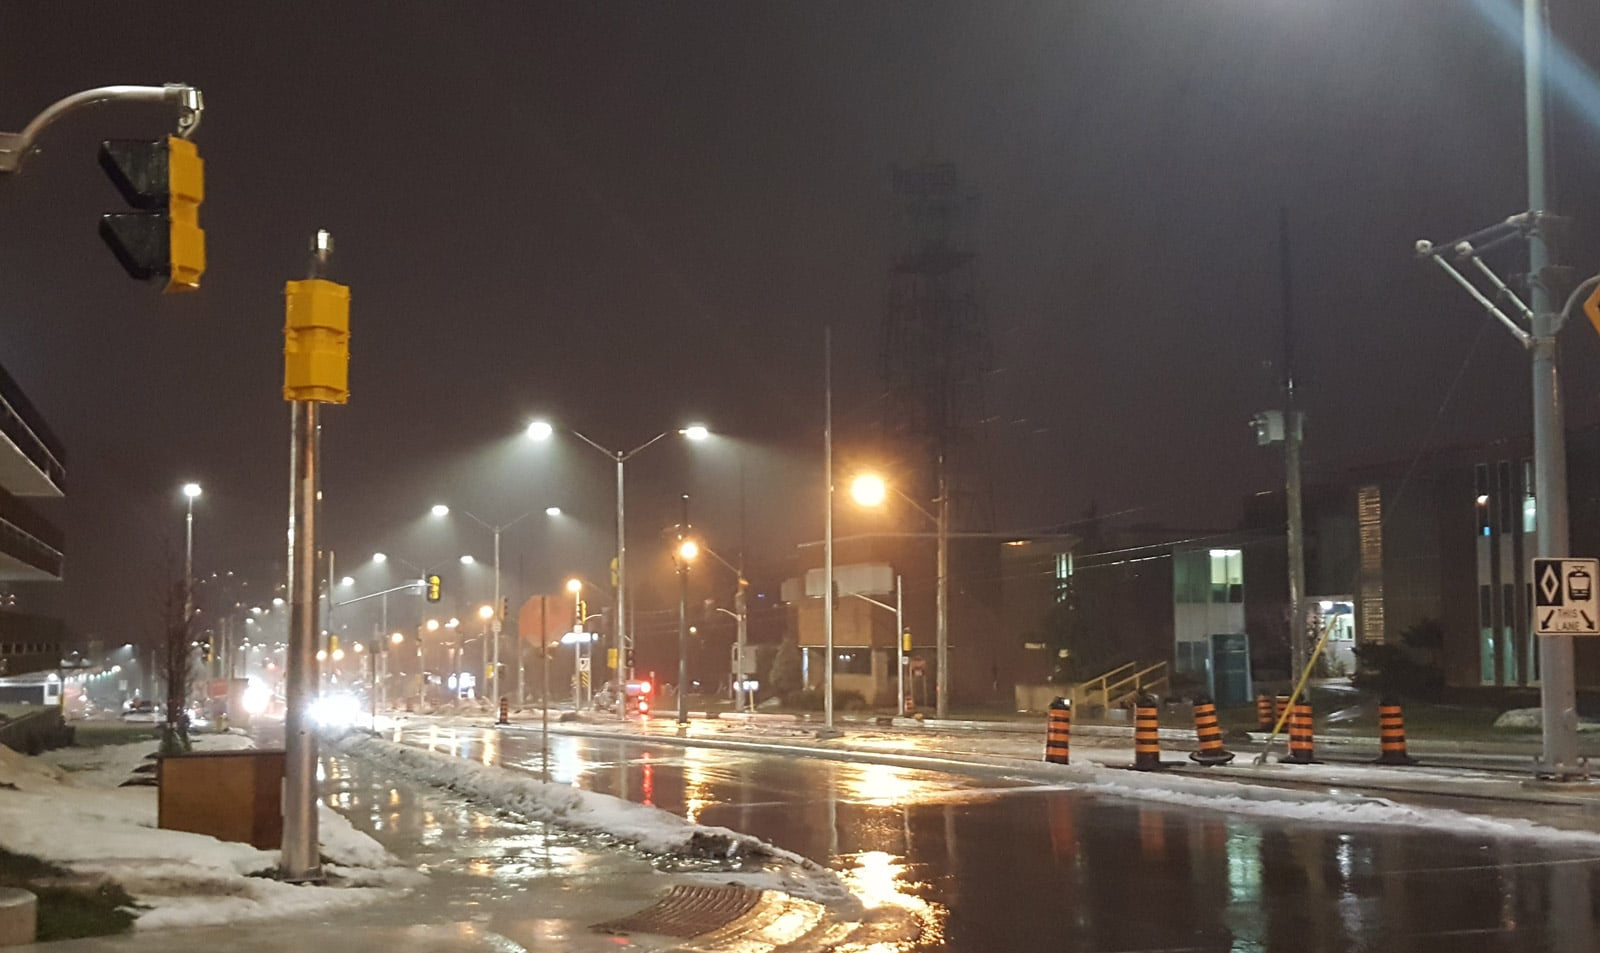 4000K LED street lights in Kitchener Ontario